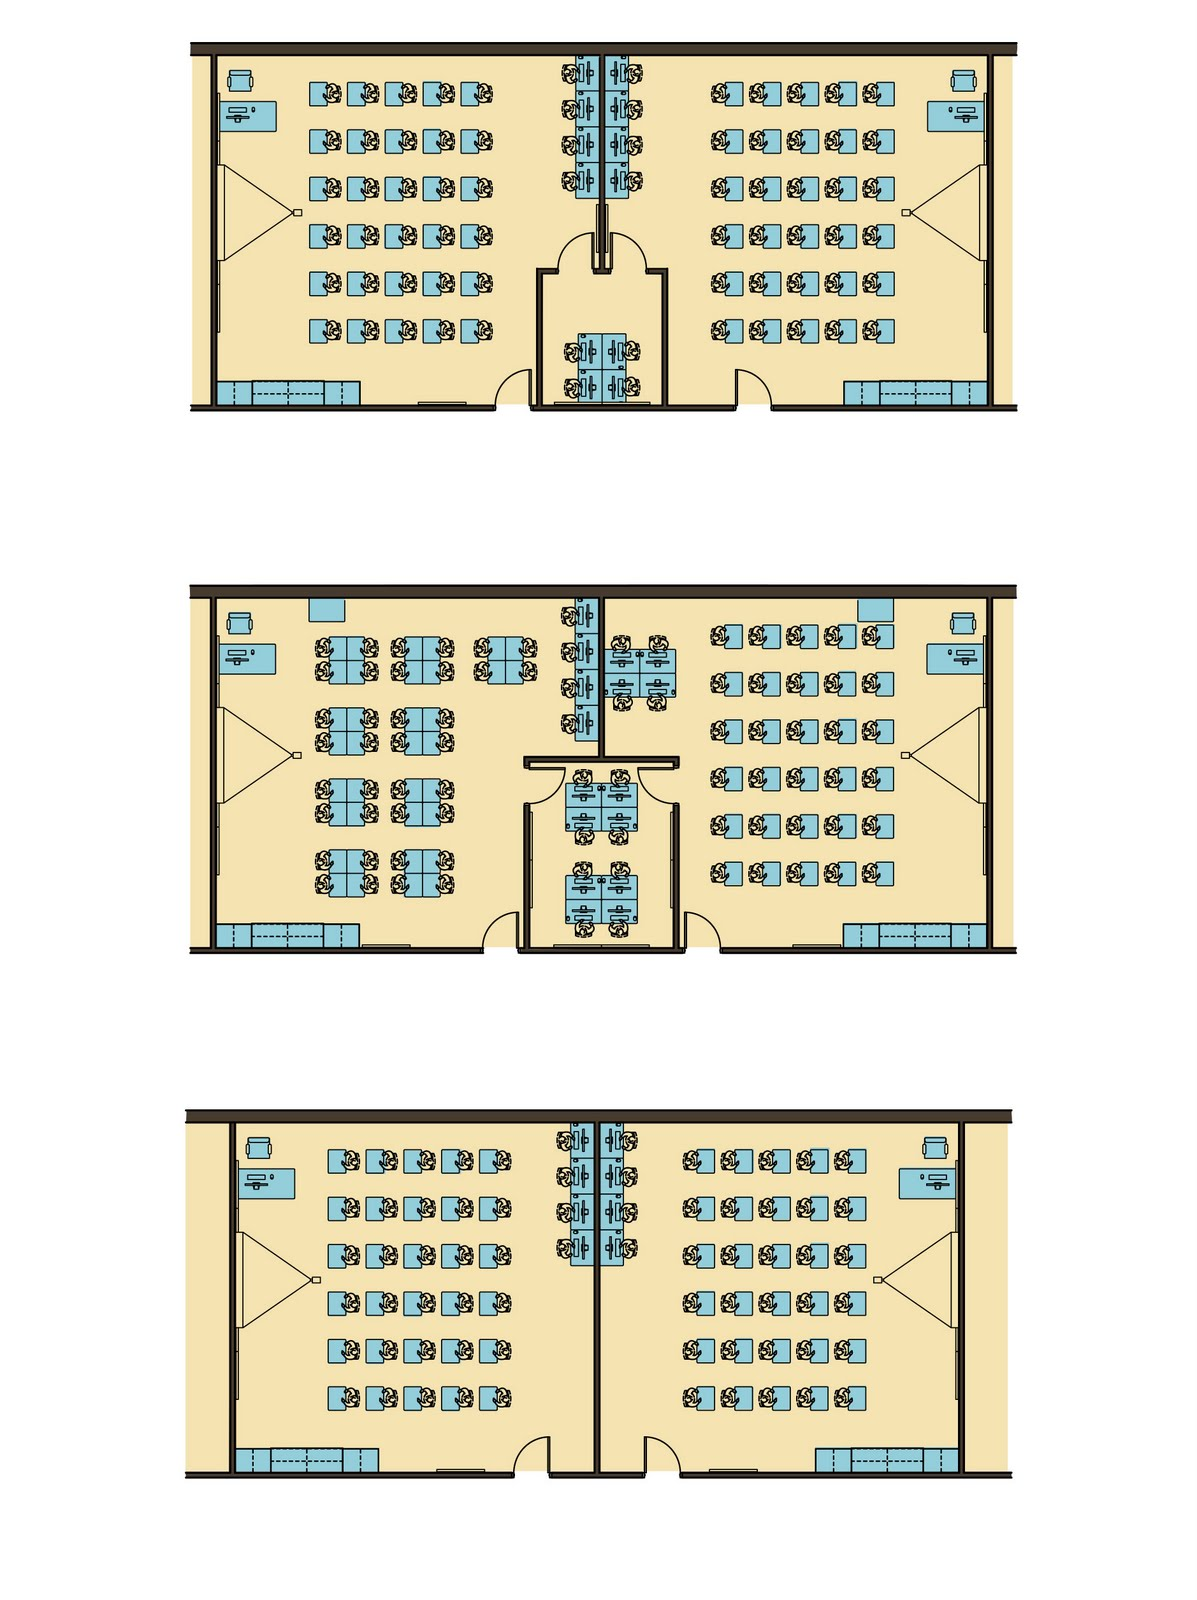 Classroom Layouts For Middle School : The gallery for gt middle school classroom layout